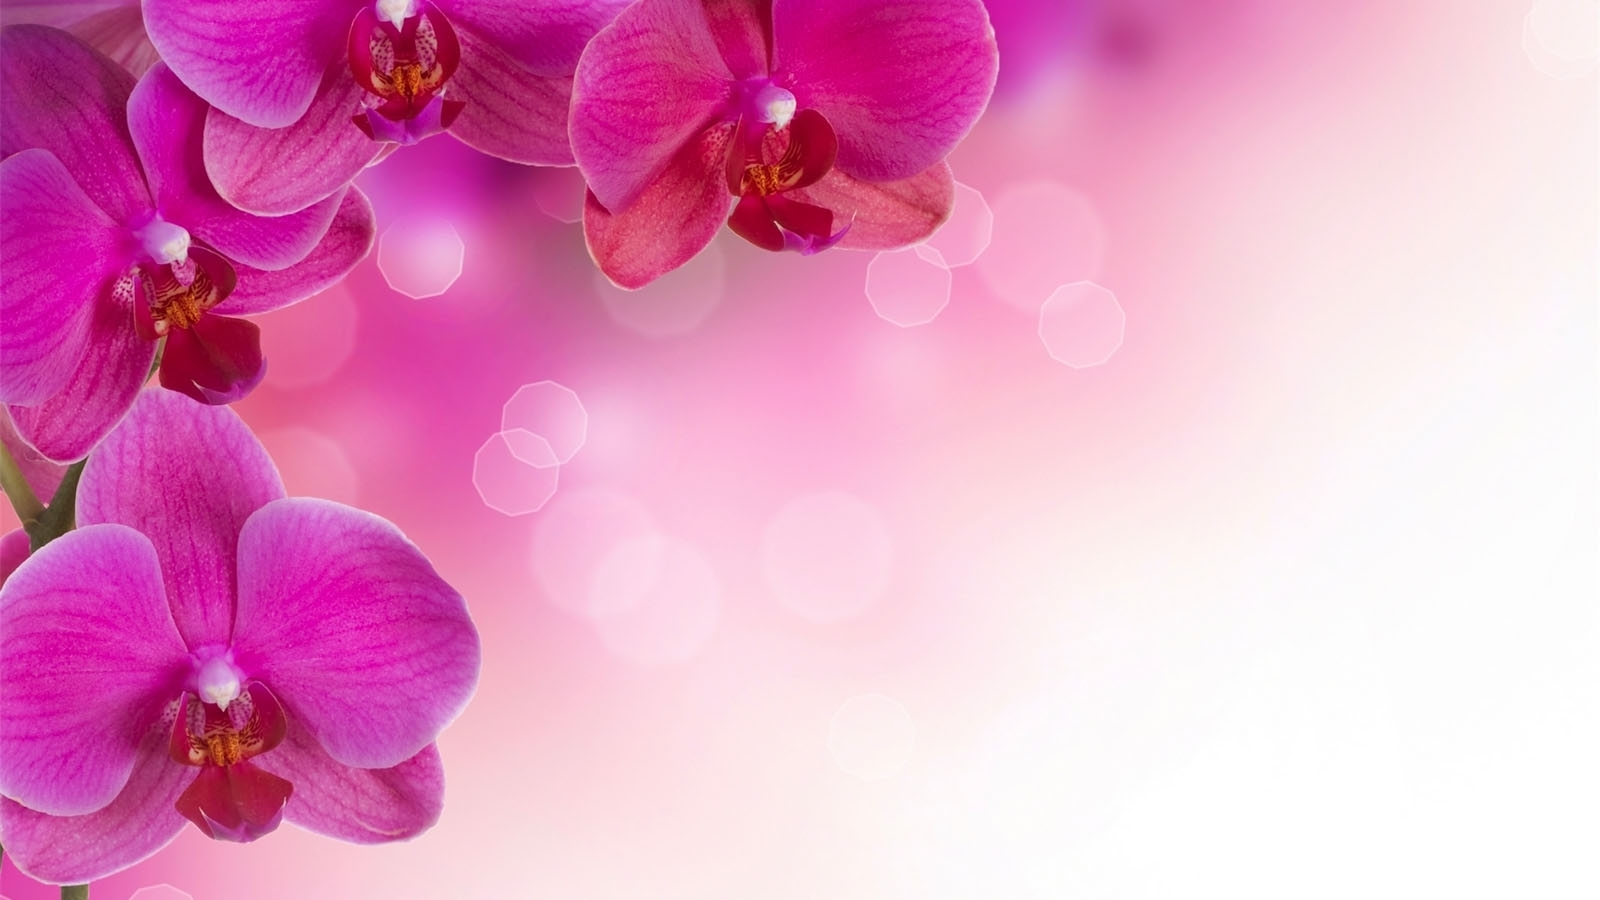 Real flower background images free Real flower background images - ClipartFest free